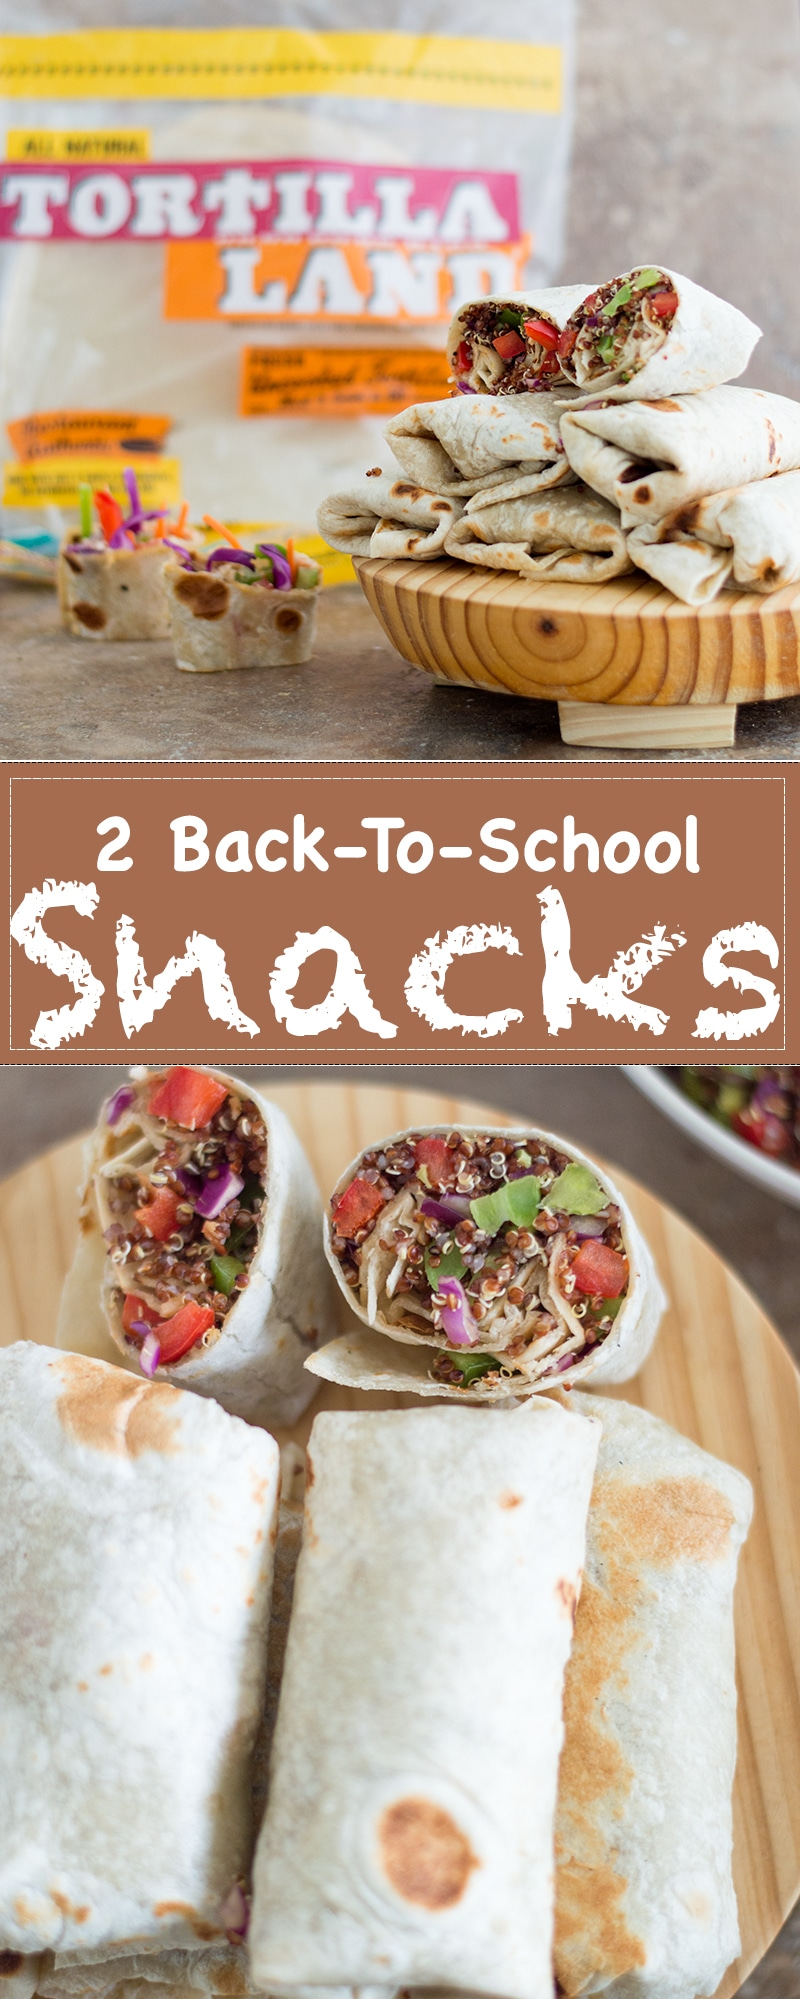 Quinoa Wraps made with Red Cabbage, Edamame and bell peppers wrapped in Tortillas. Also, Asian-Inspired Rainbow Rollups are perfect 2 Back-to-school recipes